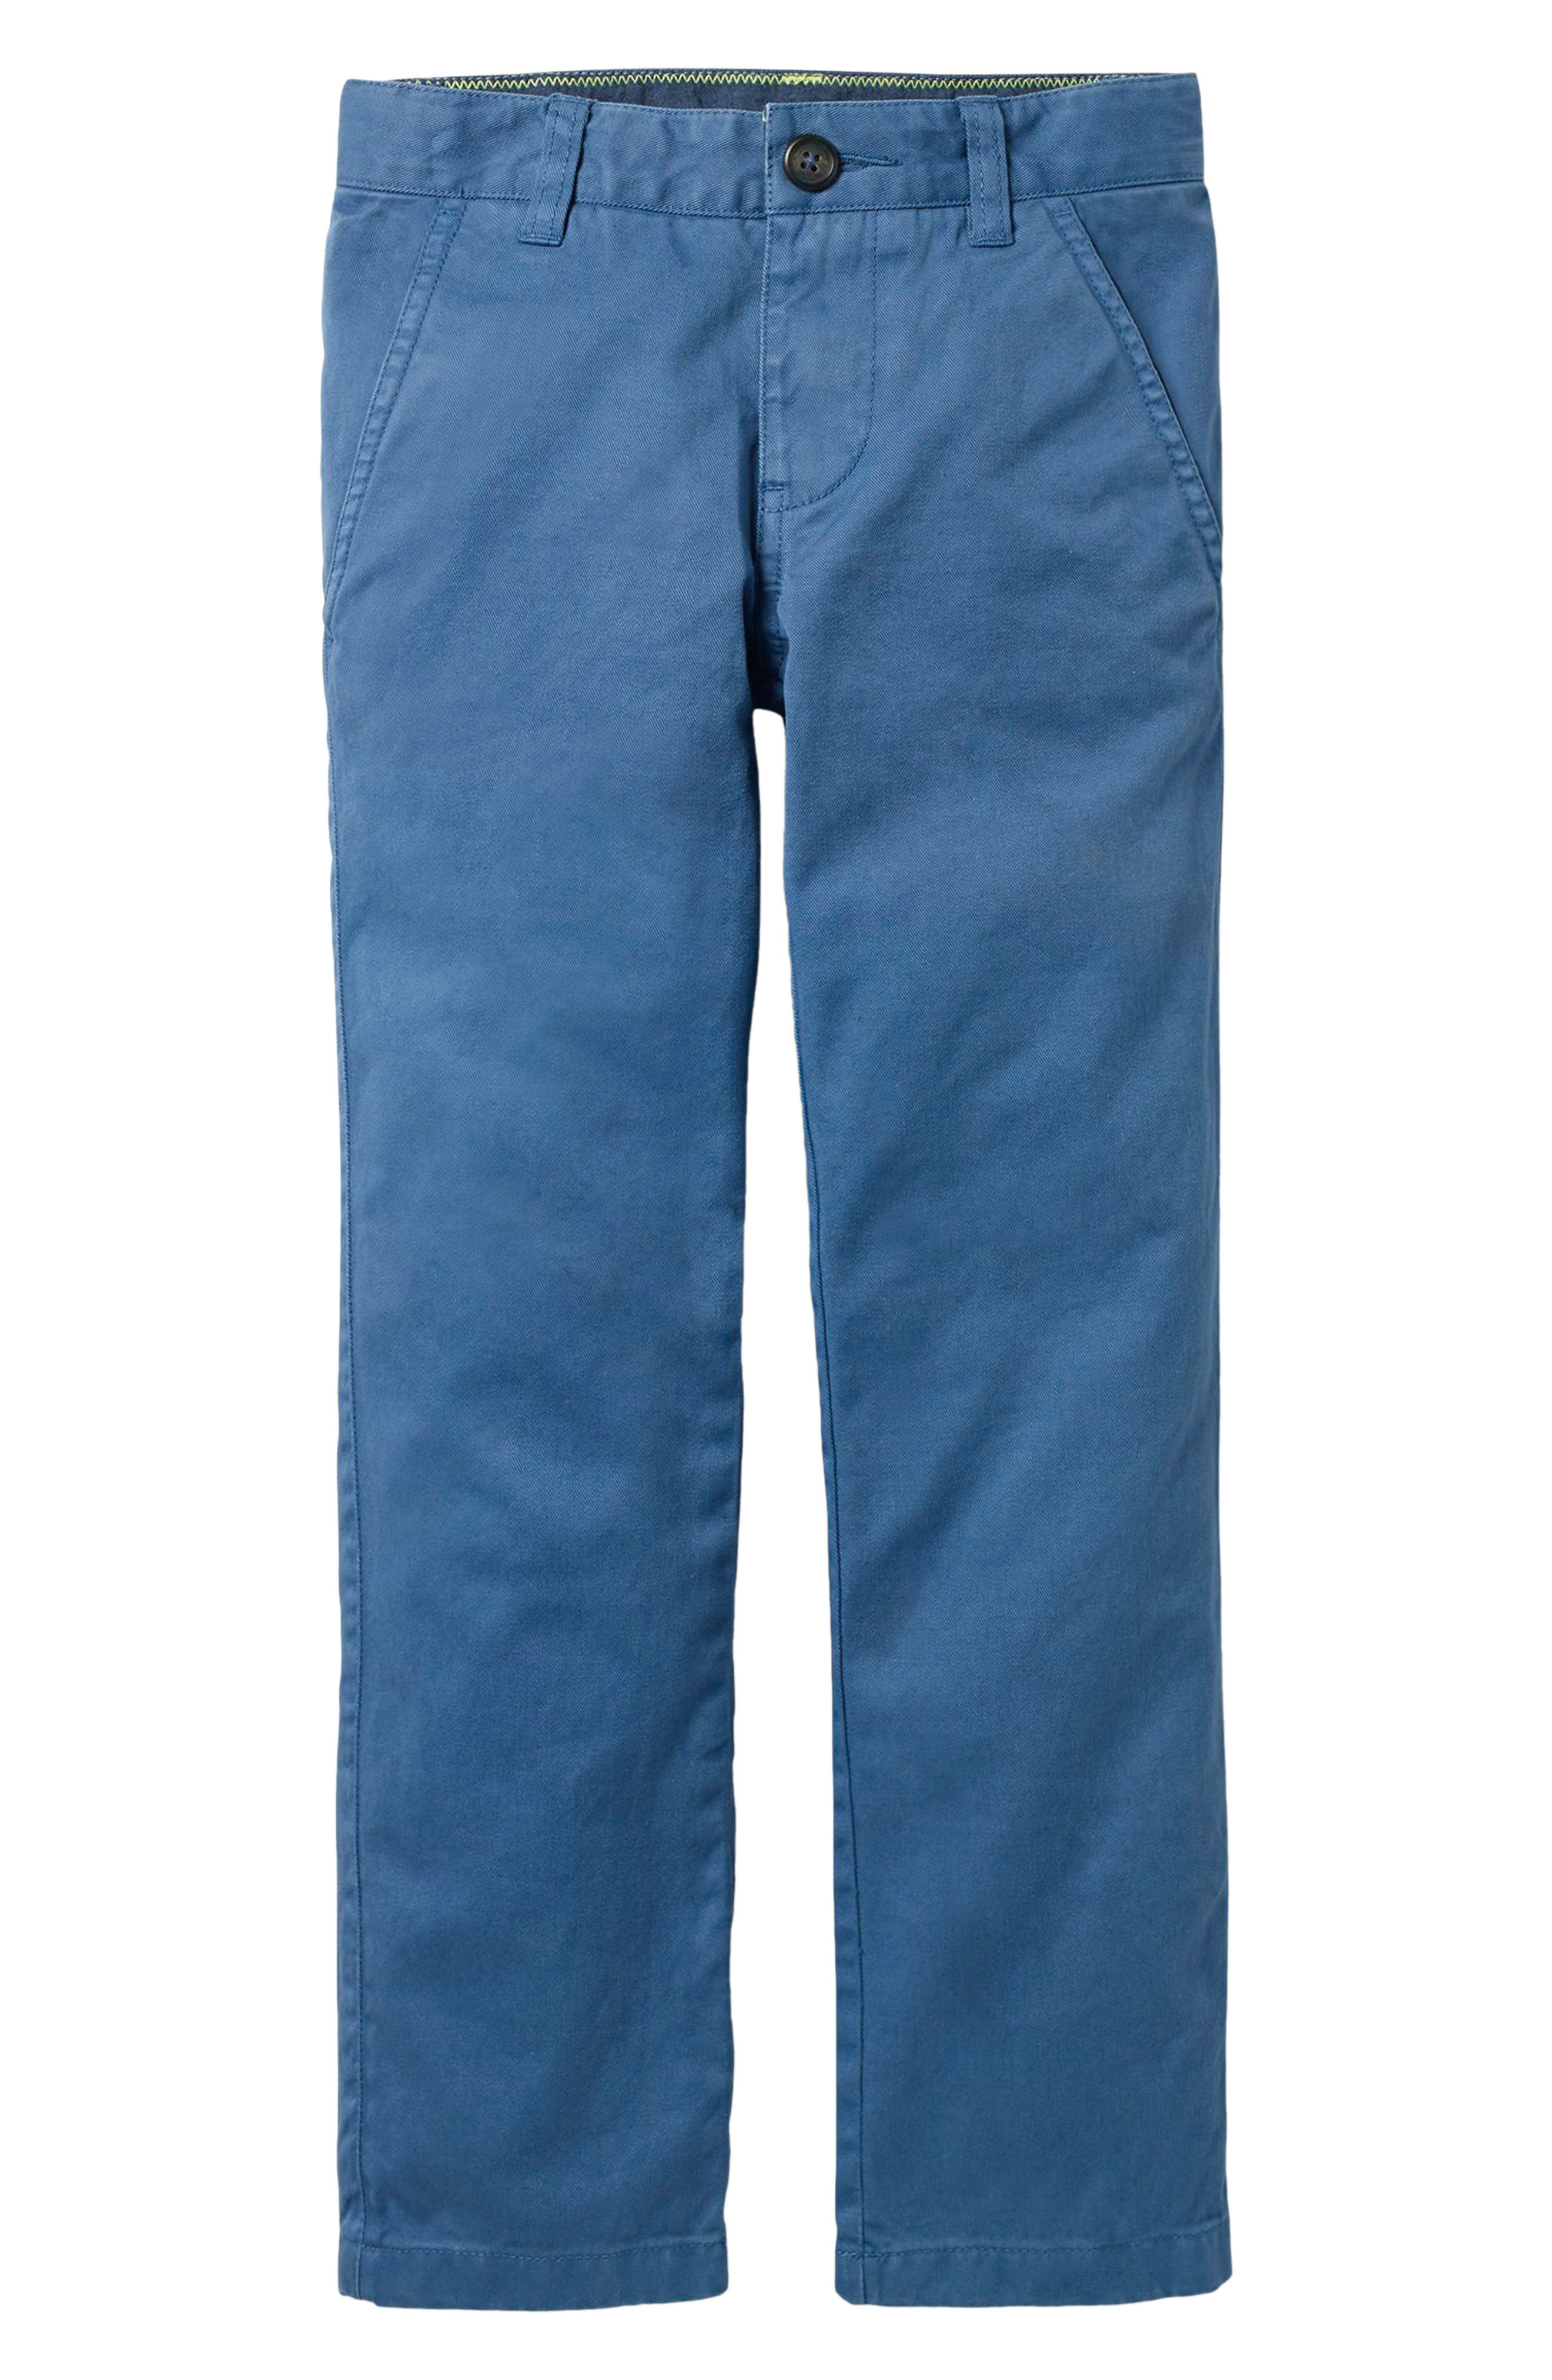 Alternate Image 1 Selected - Mini Boden Chino Pants (Toddler Boys, Little Boys & Big Boys)